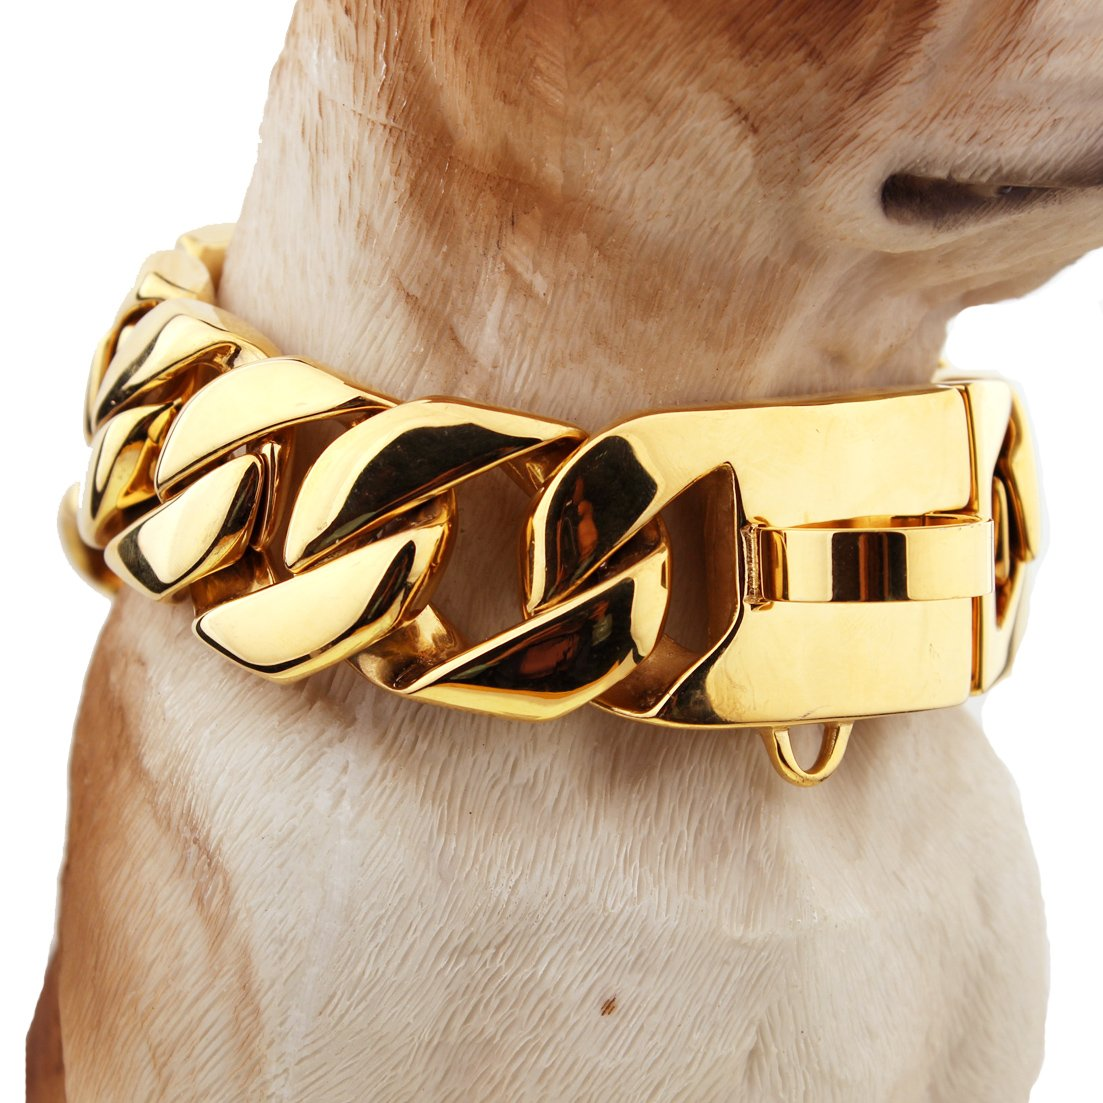 Jewelry Kingdom 1 24mm 30mm Gold Plated Casting Heavy Stainless Steel Curb Link Chain Pet Dog Collar Choker,18-28 Inches (30mm Wide, 22inch recommend dog's neck 18inch) by Jewelry Kingdom 1